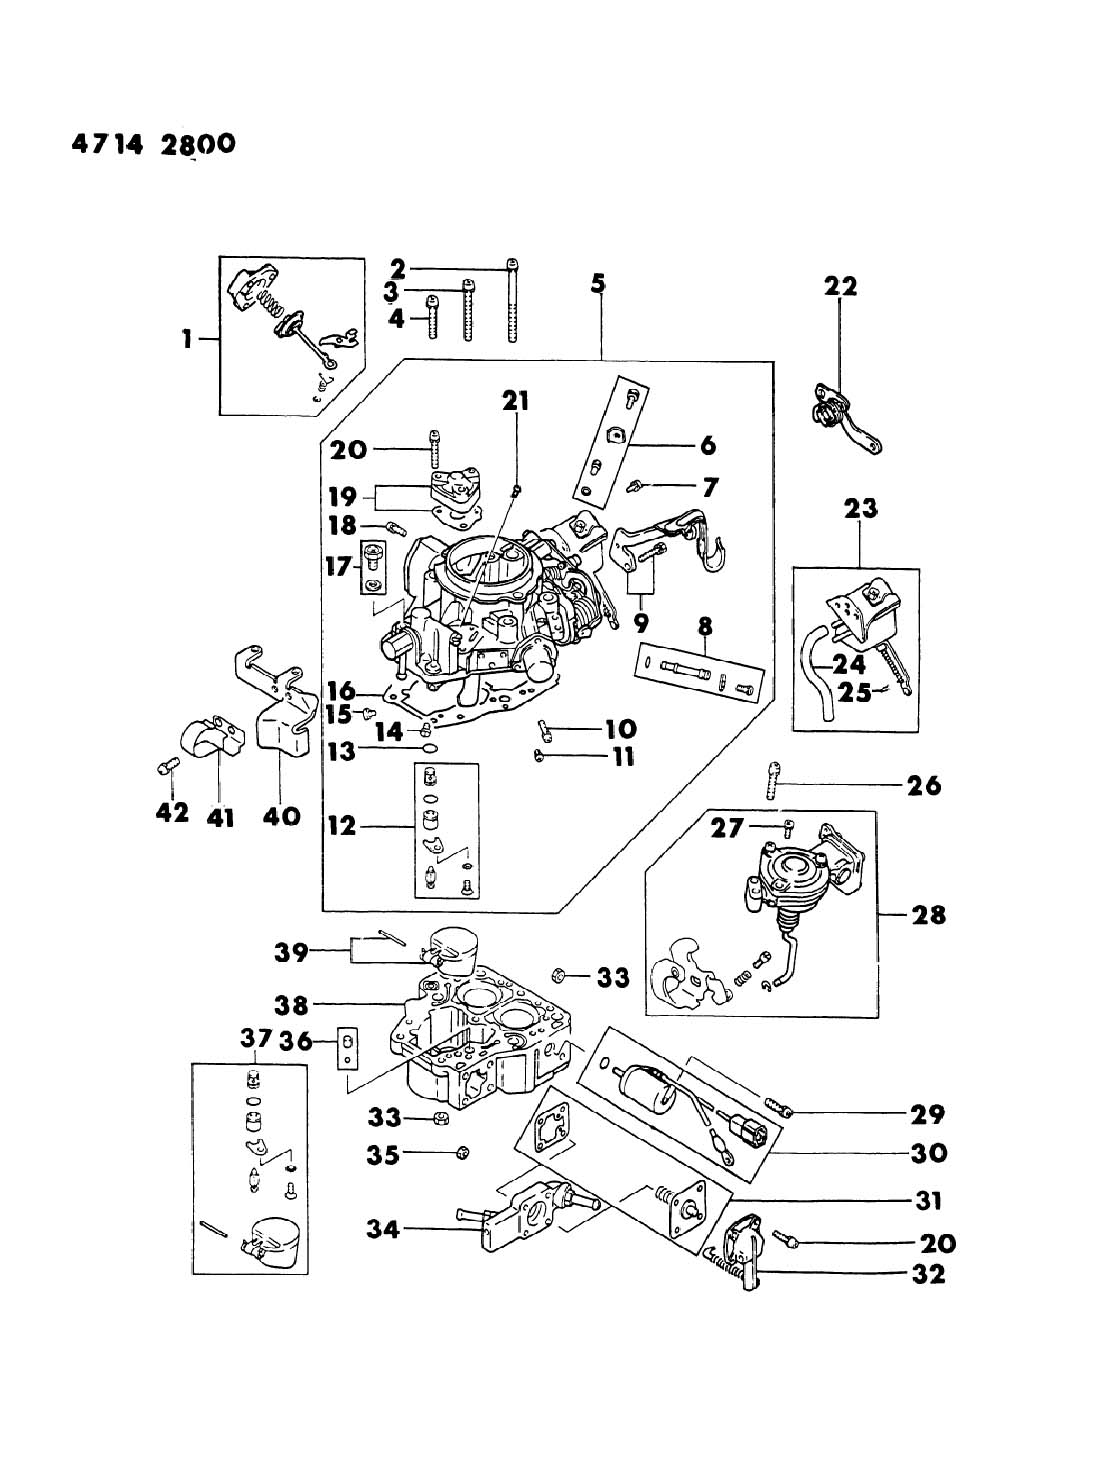 1984 chrysler mitsubishi engine diagram